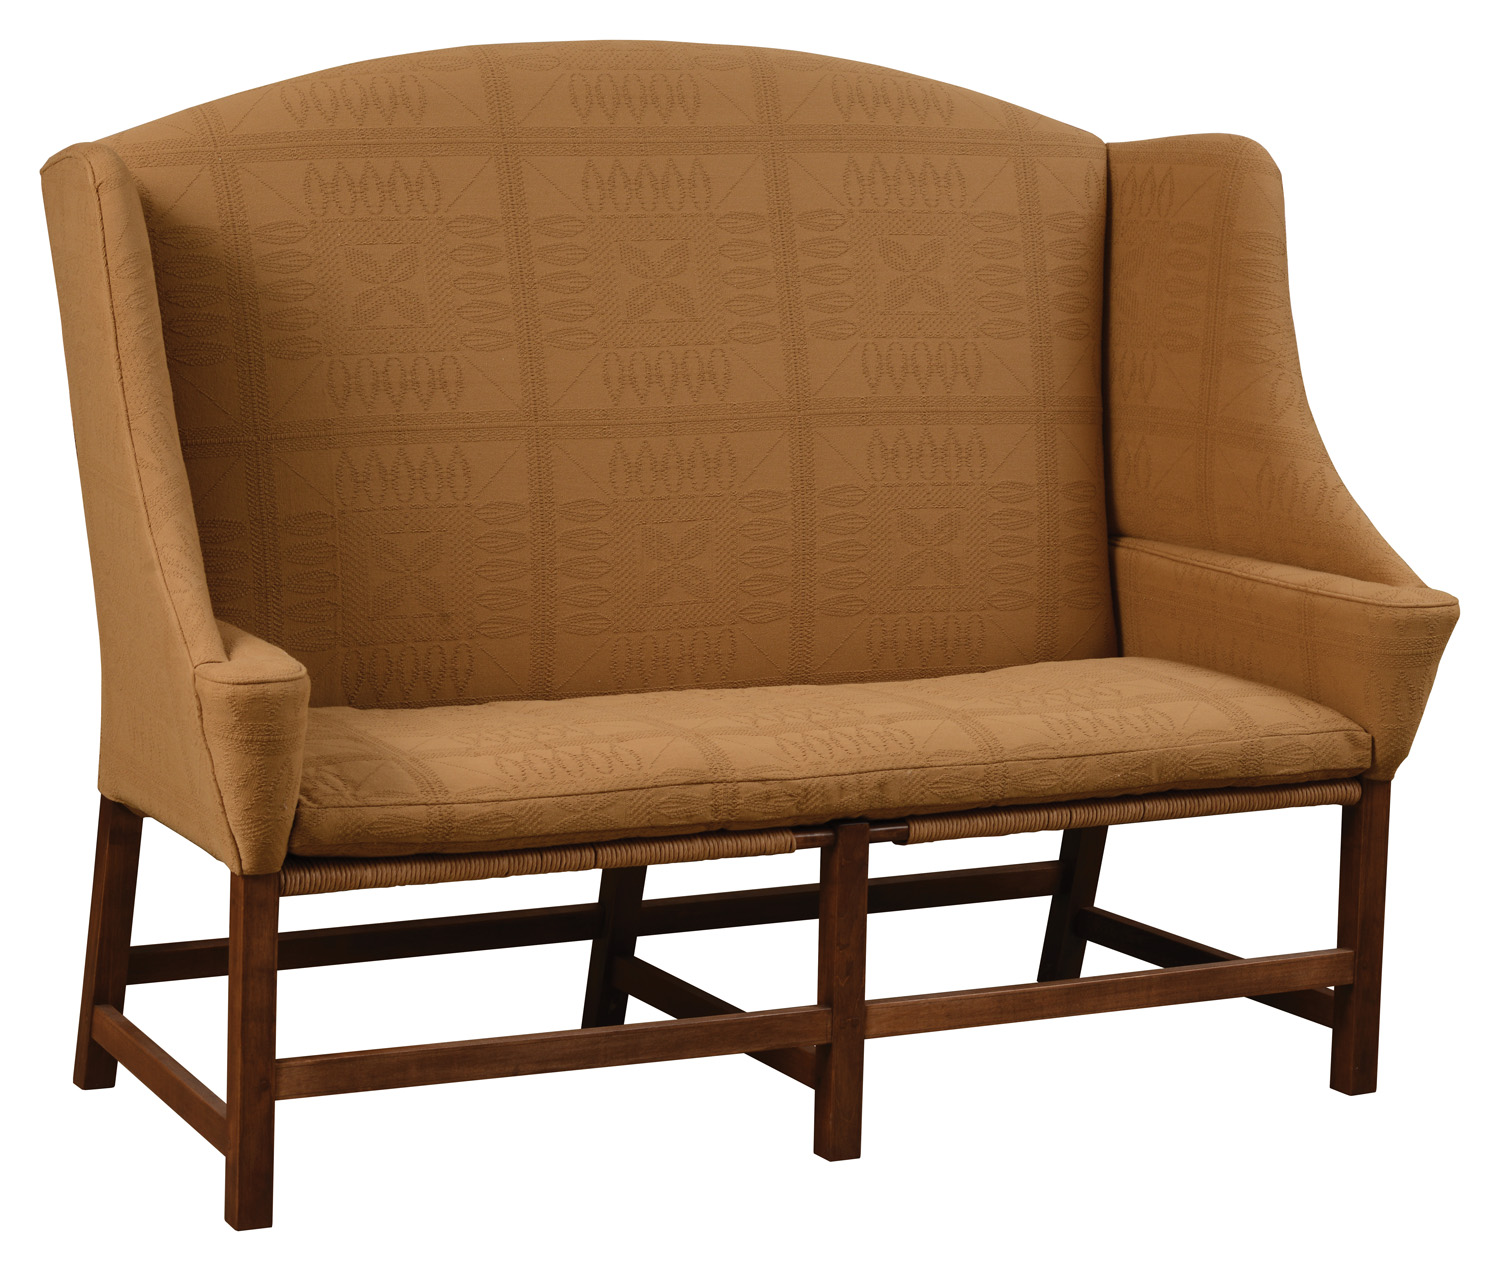 UST-CI68_68 inch Center Inn Sofa_cp